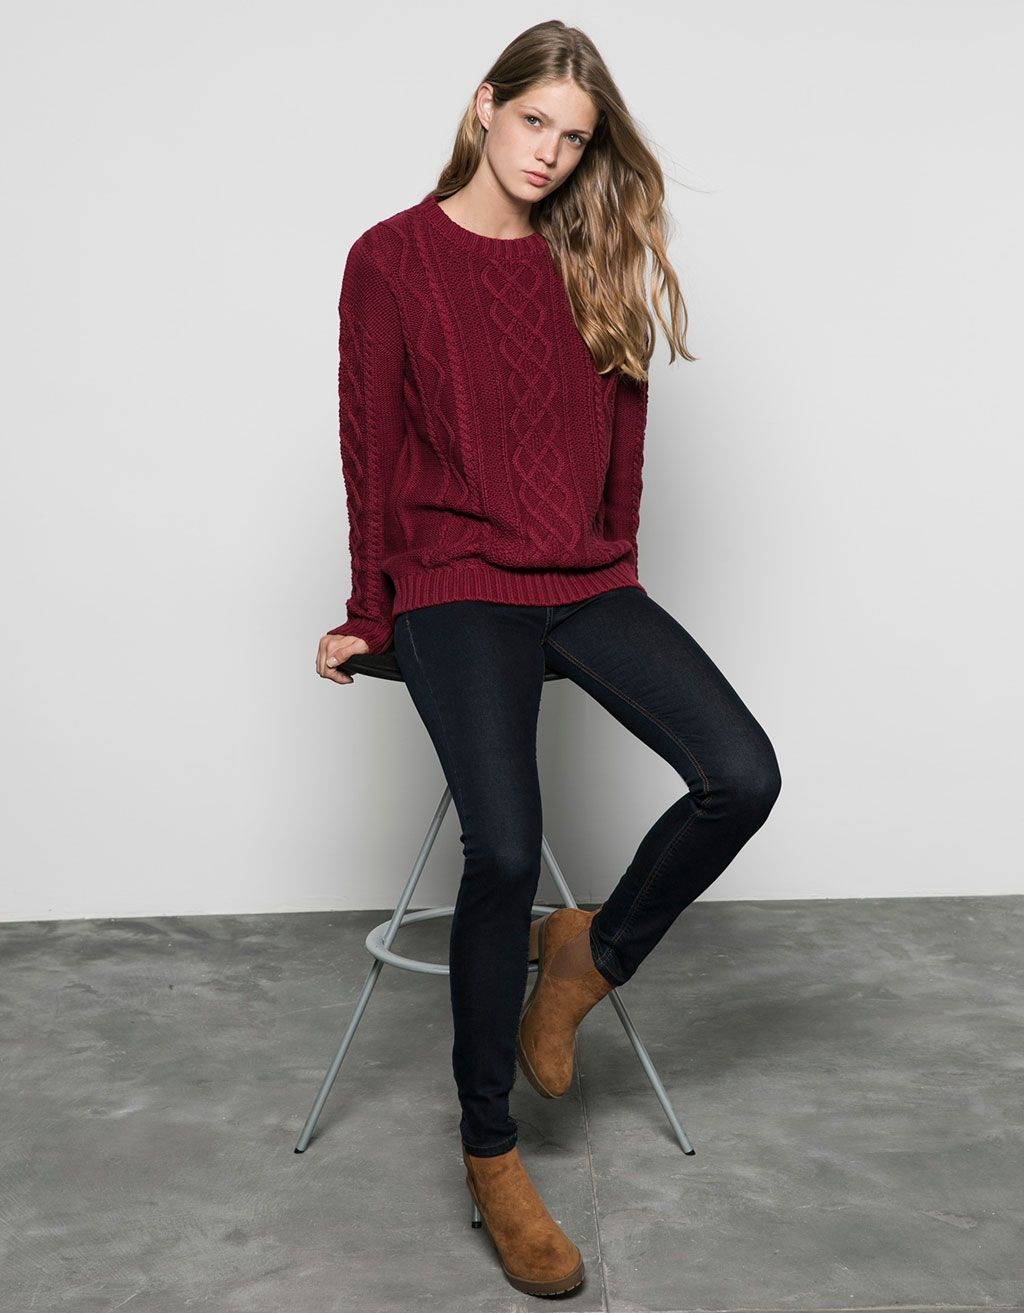 Bershka cable knit crew neck pullover - Sweaters & Cardigans - Bershka Switzerland